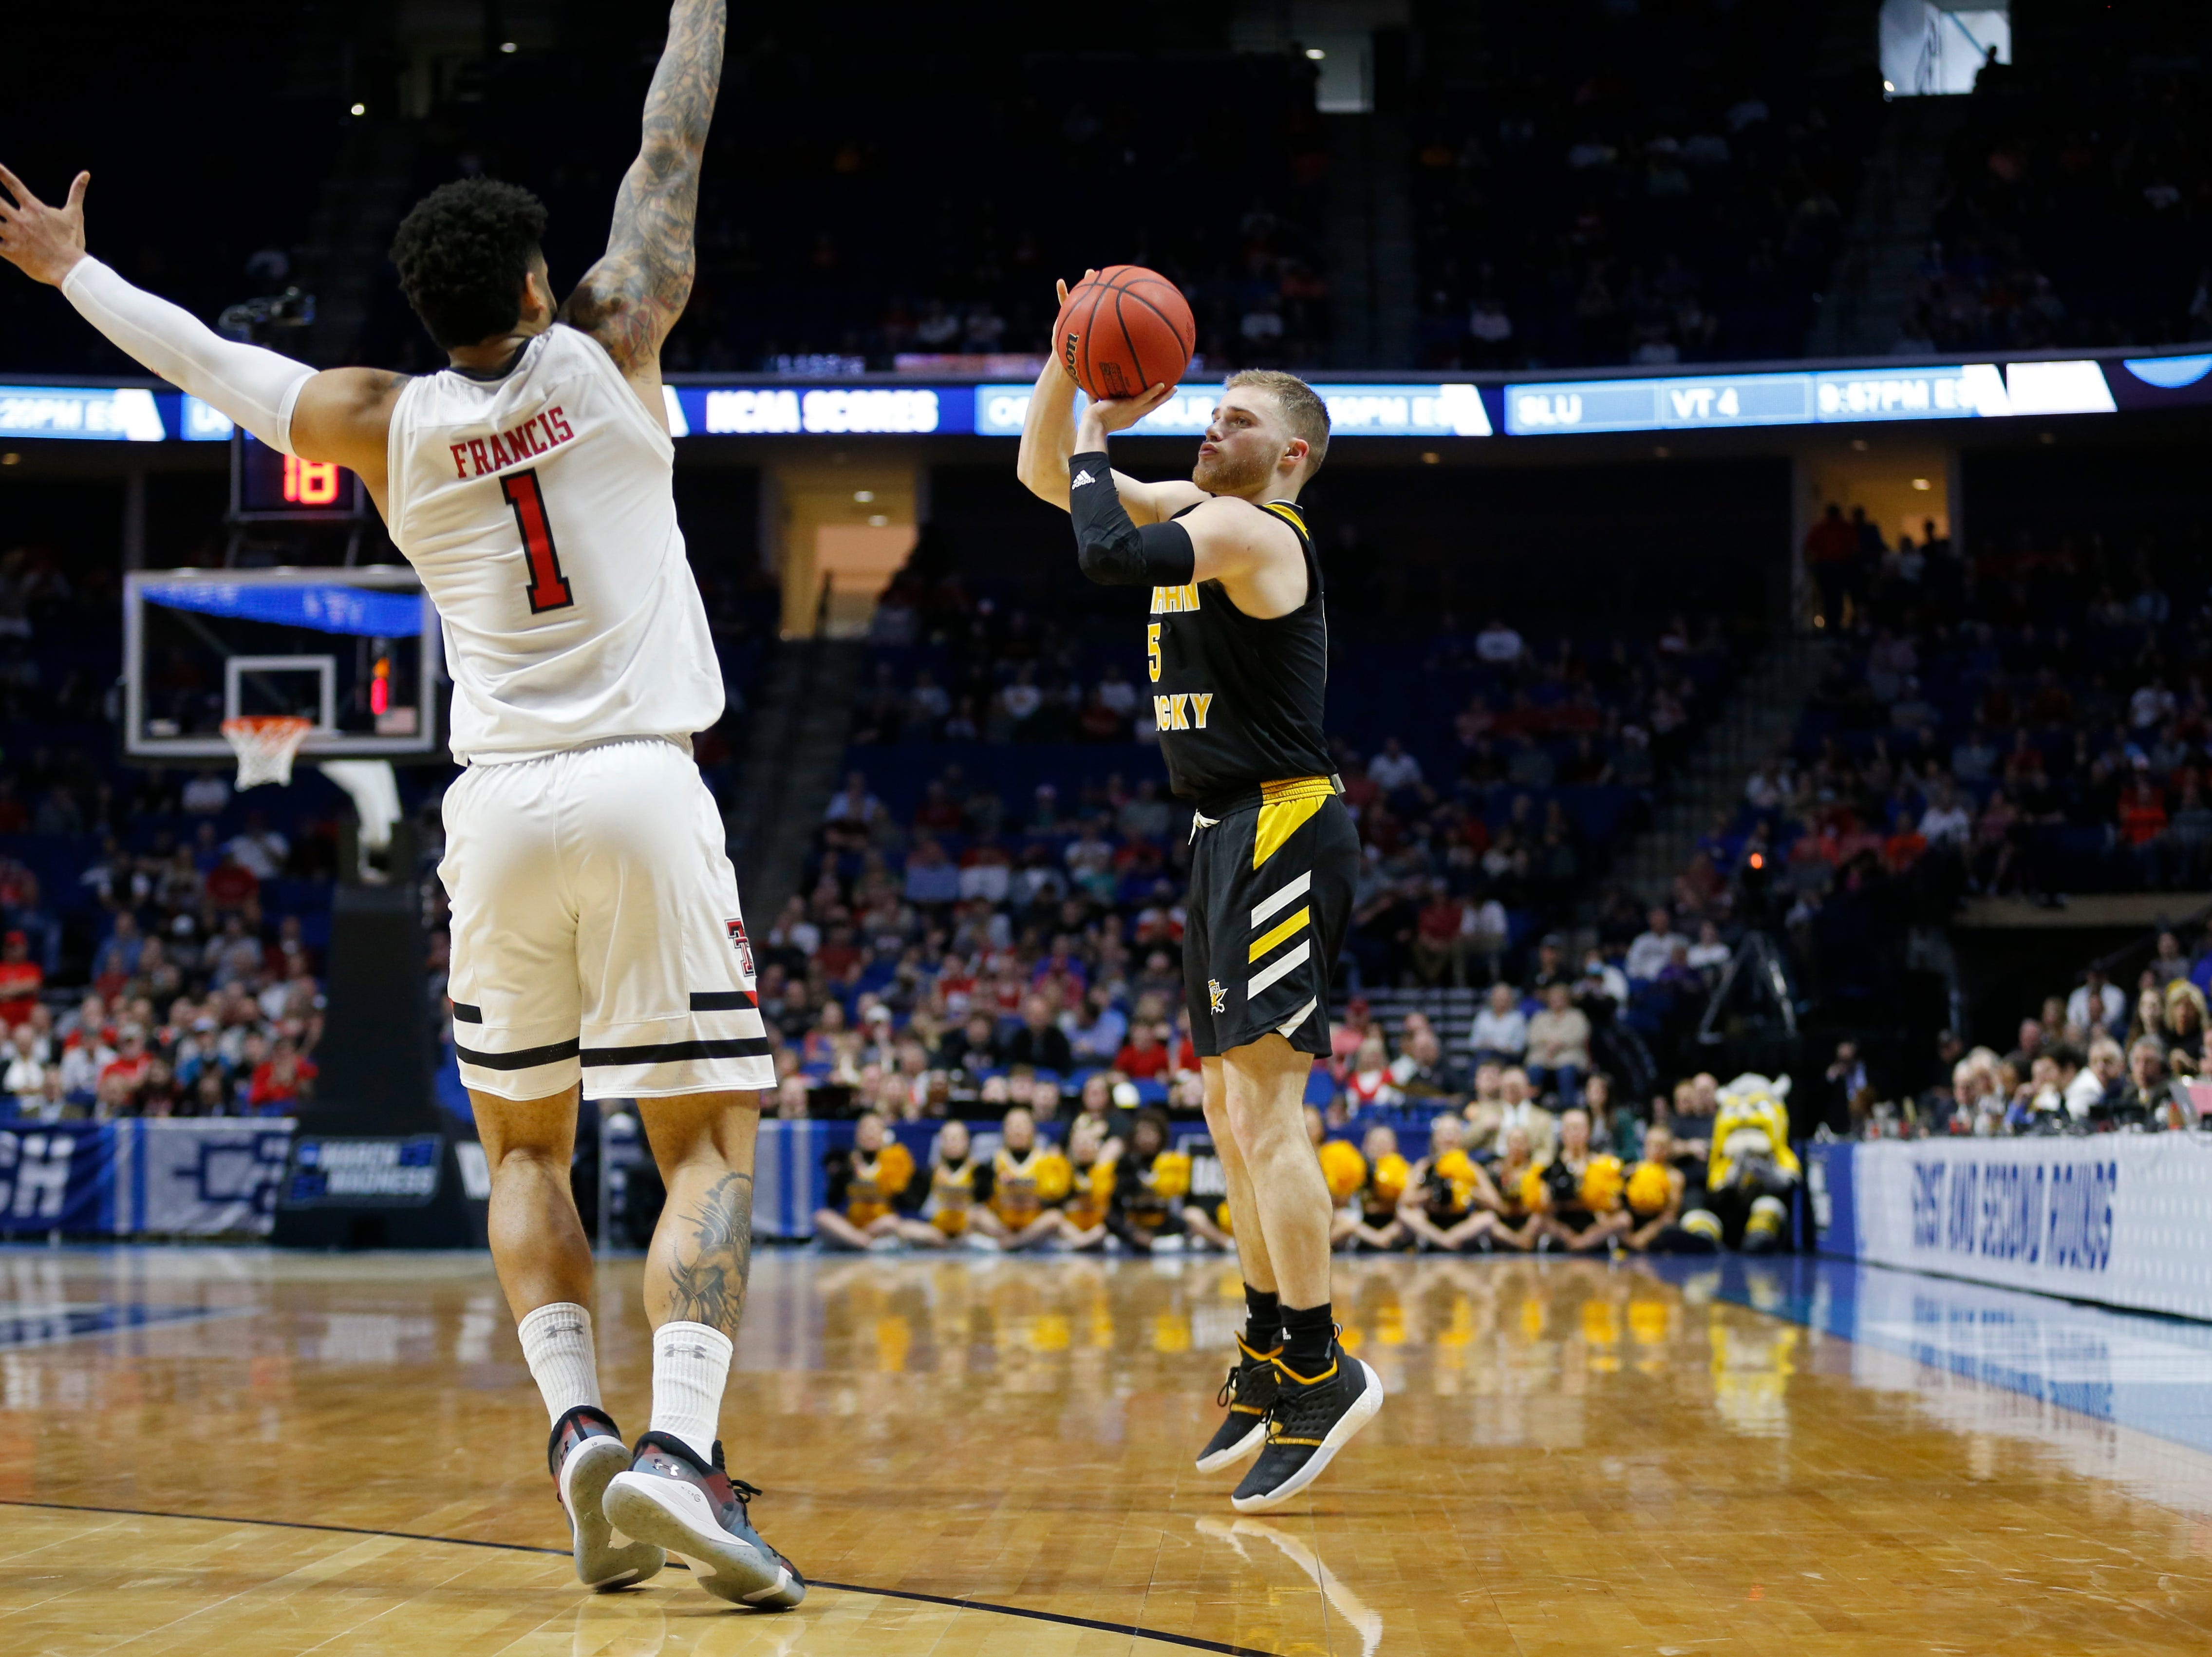 Northern Kentucky Norse guard Tyler Sharpe (15) scores from three point range in the first half of the NCAA Tournament First Round game between the 14-seeded Northern Kentucky Norse and the 3-seeded Texas Tech Red Raiders the BOK Center in downtown Tulsa on Friday, March 22, 2019. Texas Tech led 30-26 at halftime.